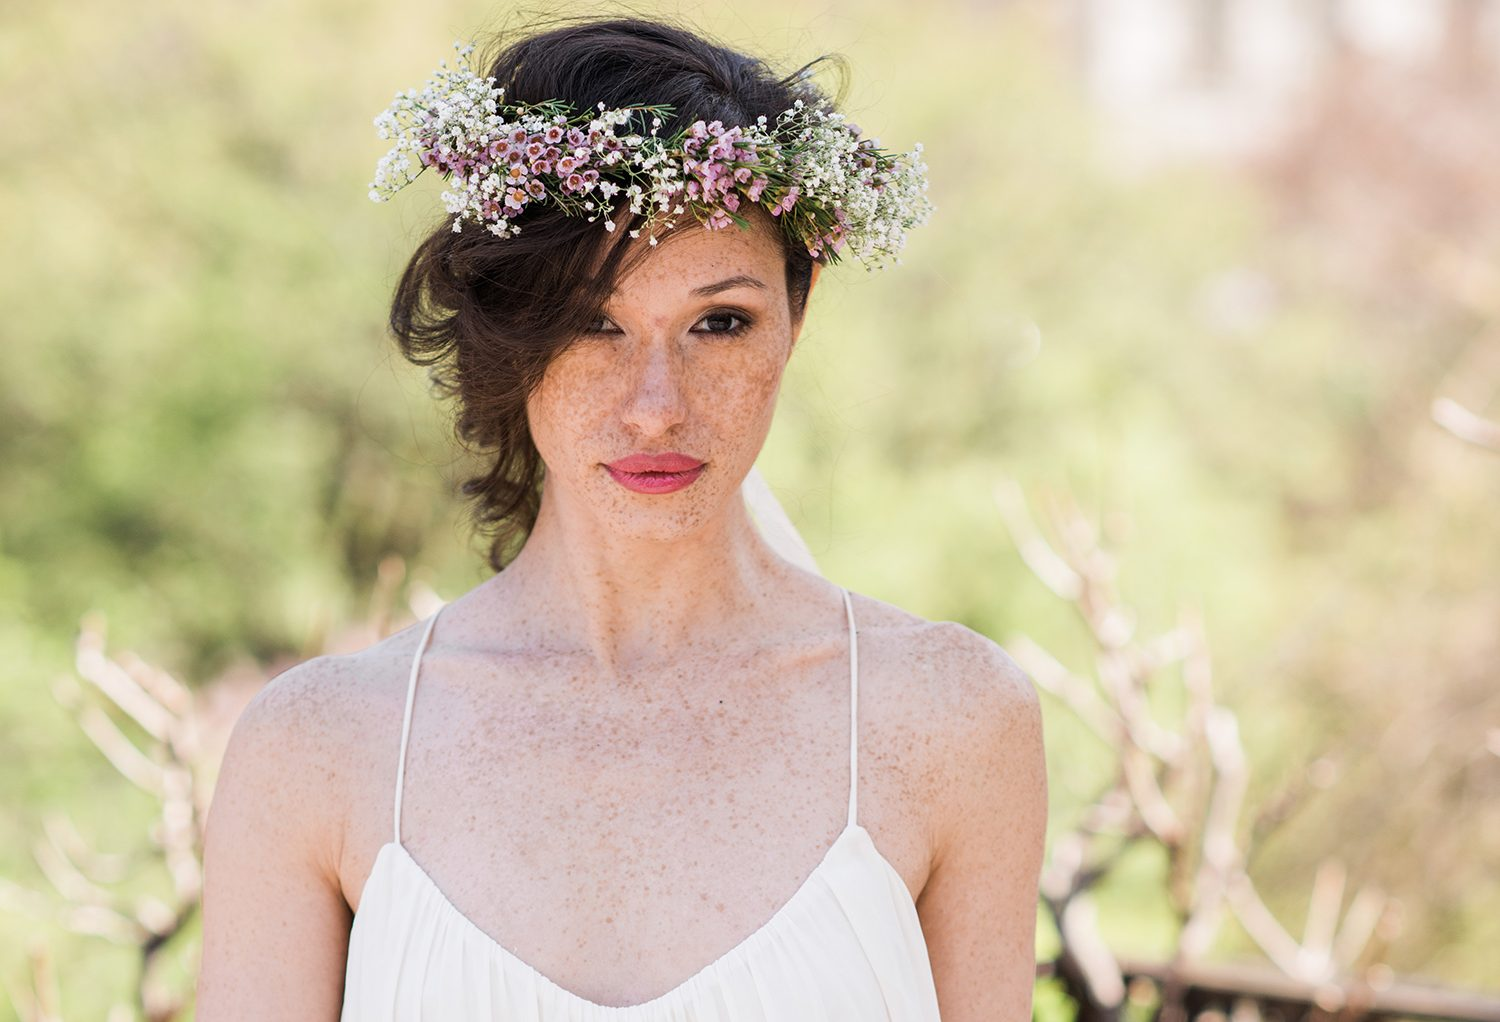 Spring flower crown for the rustic bride by stellar style events spring flower crown for the rustic bride by stellar style events izmirmasajfo